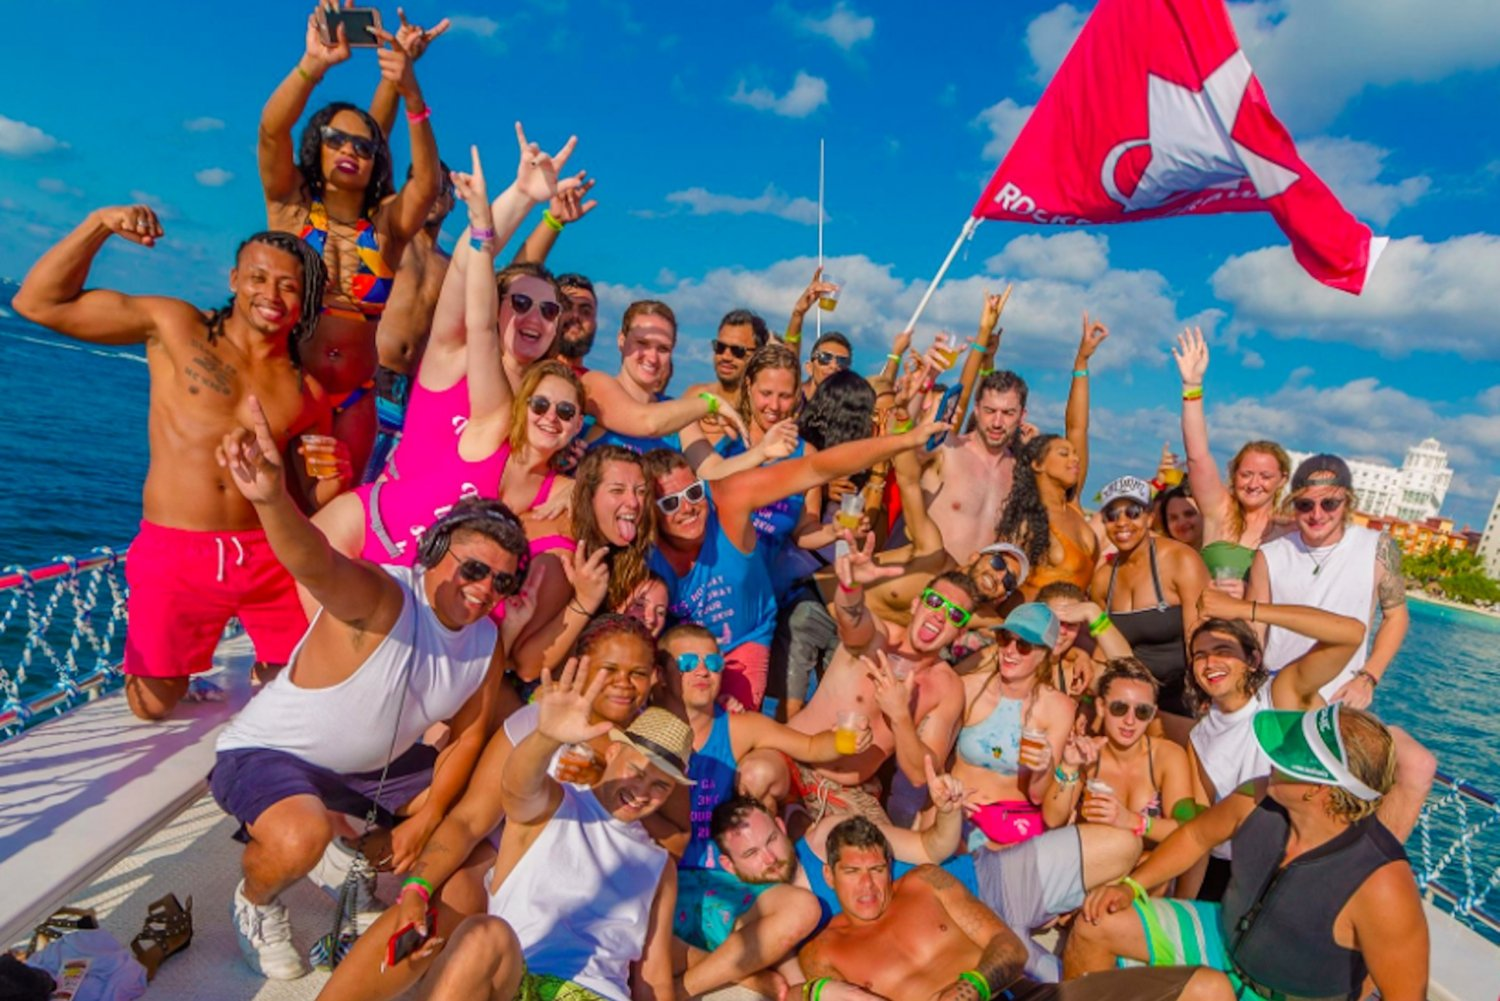 Rockstar Boat Party Cancun - Booze Cruise Cancun (18+)